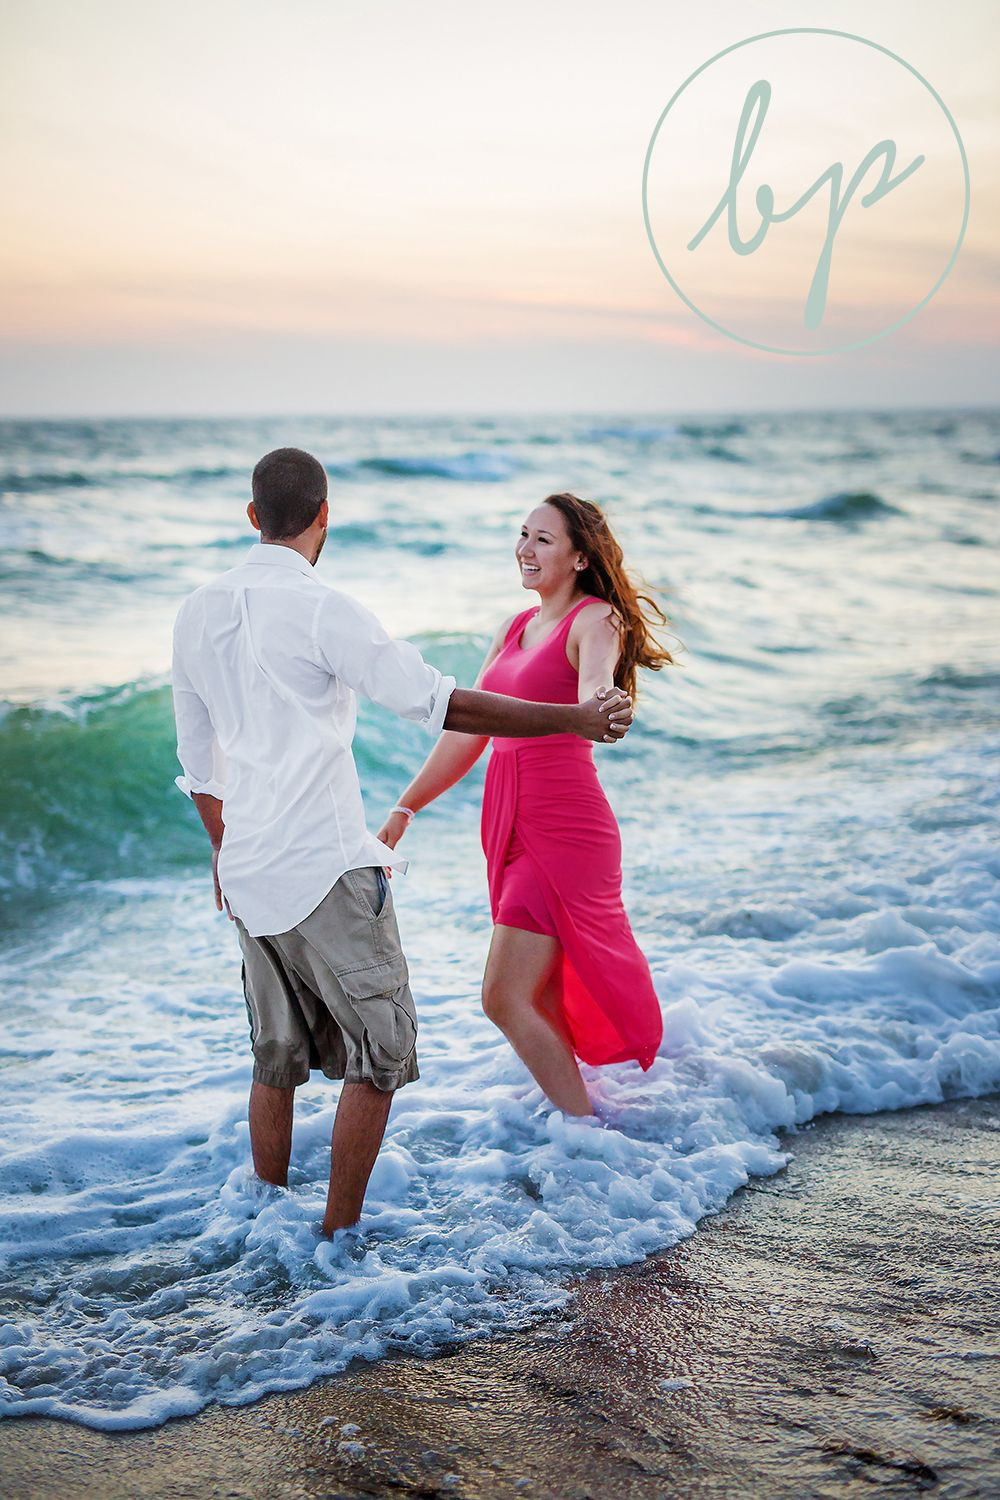 Long beach lighthouse wedding  Dancing in the waves on the beach at Cape Cod bigpicturephotoco